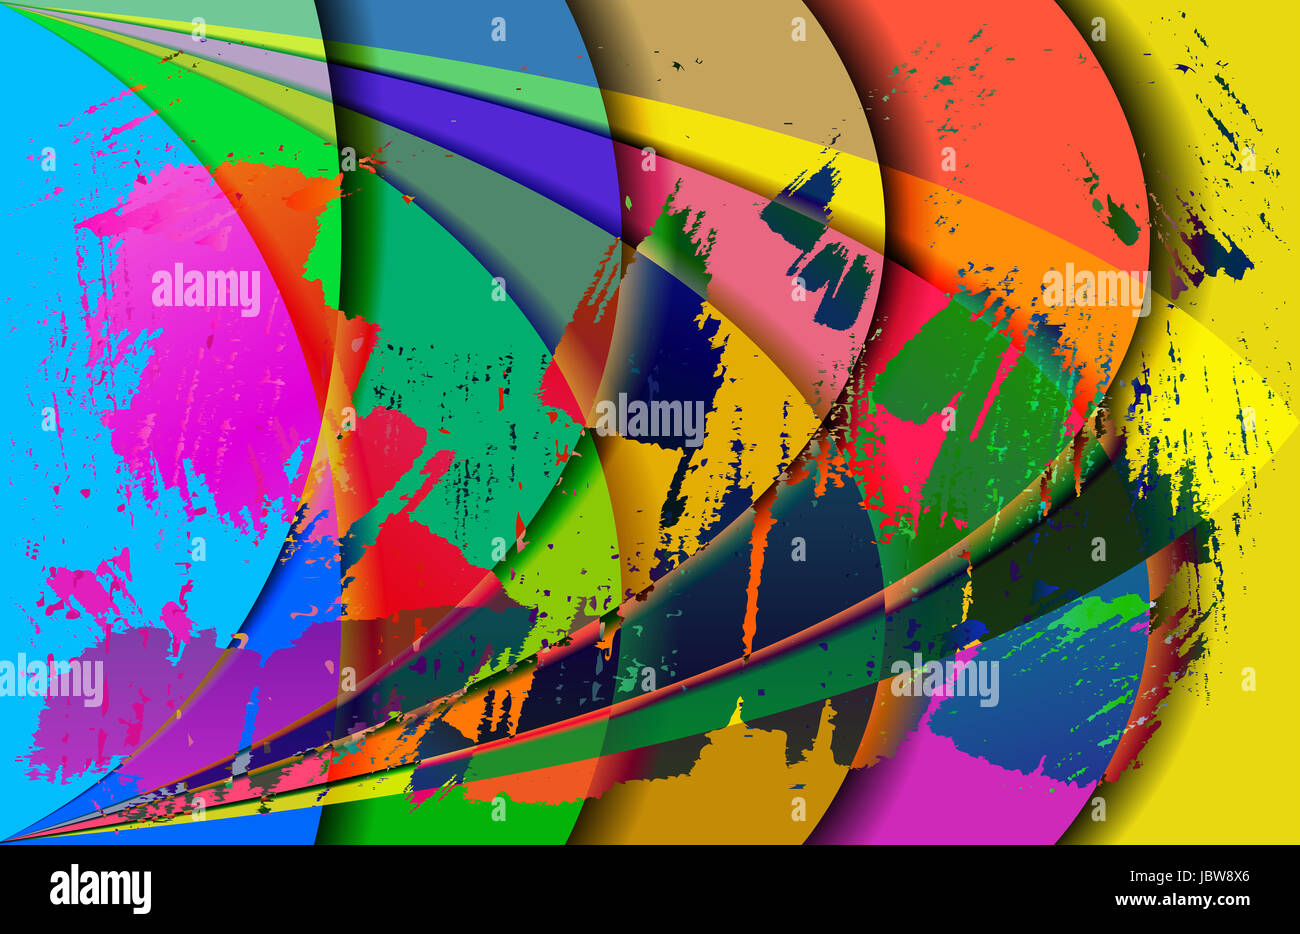 abstract gradient - Stock Image